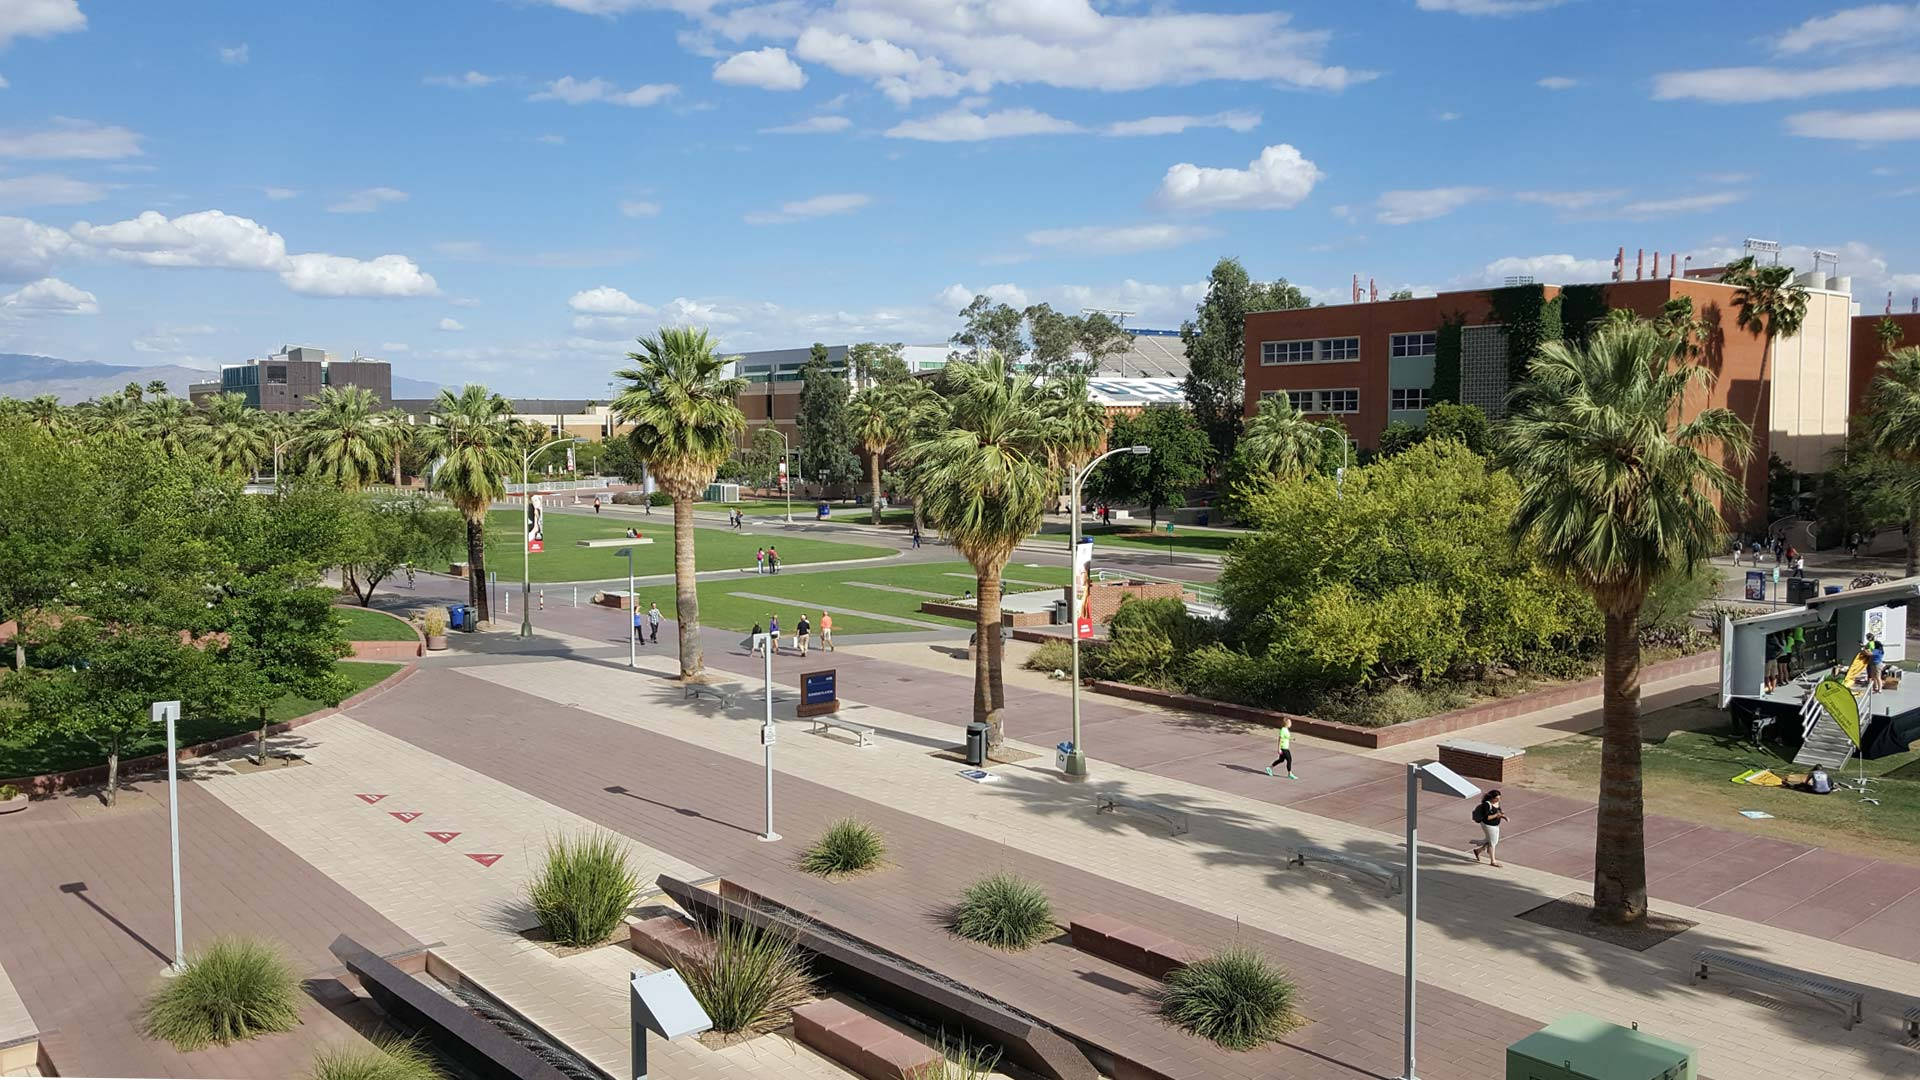 Looking across the mall from the Student Union on the campus of the University of Arizona.